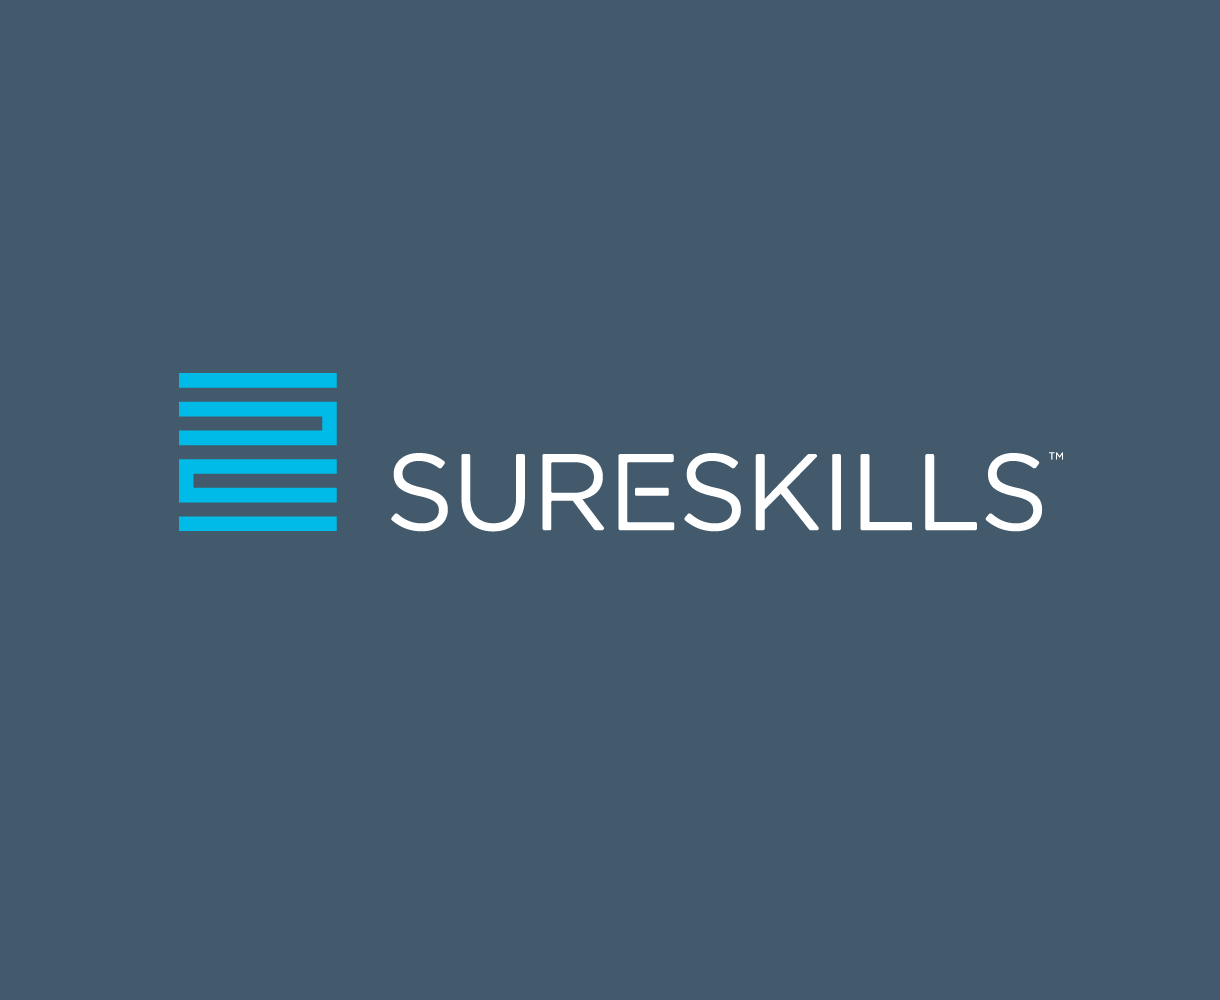 Sureskills Brand development identity mark